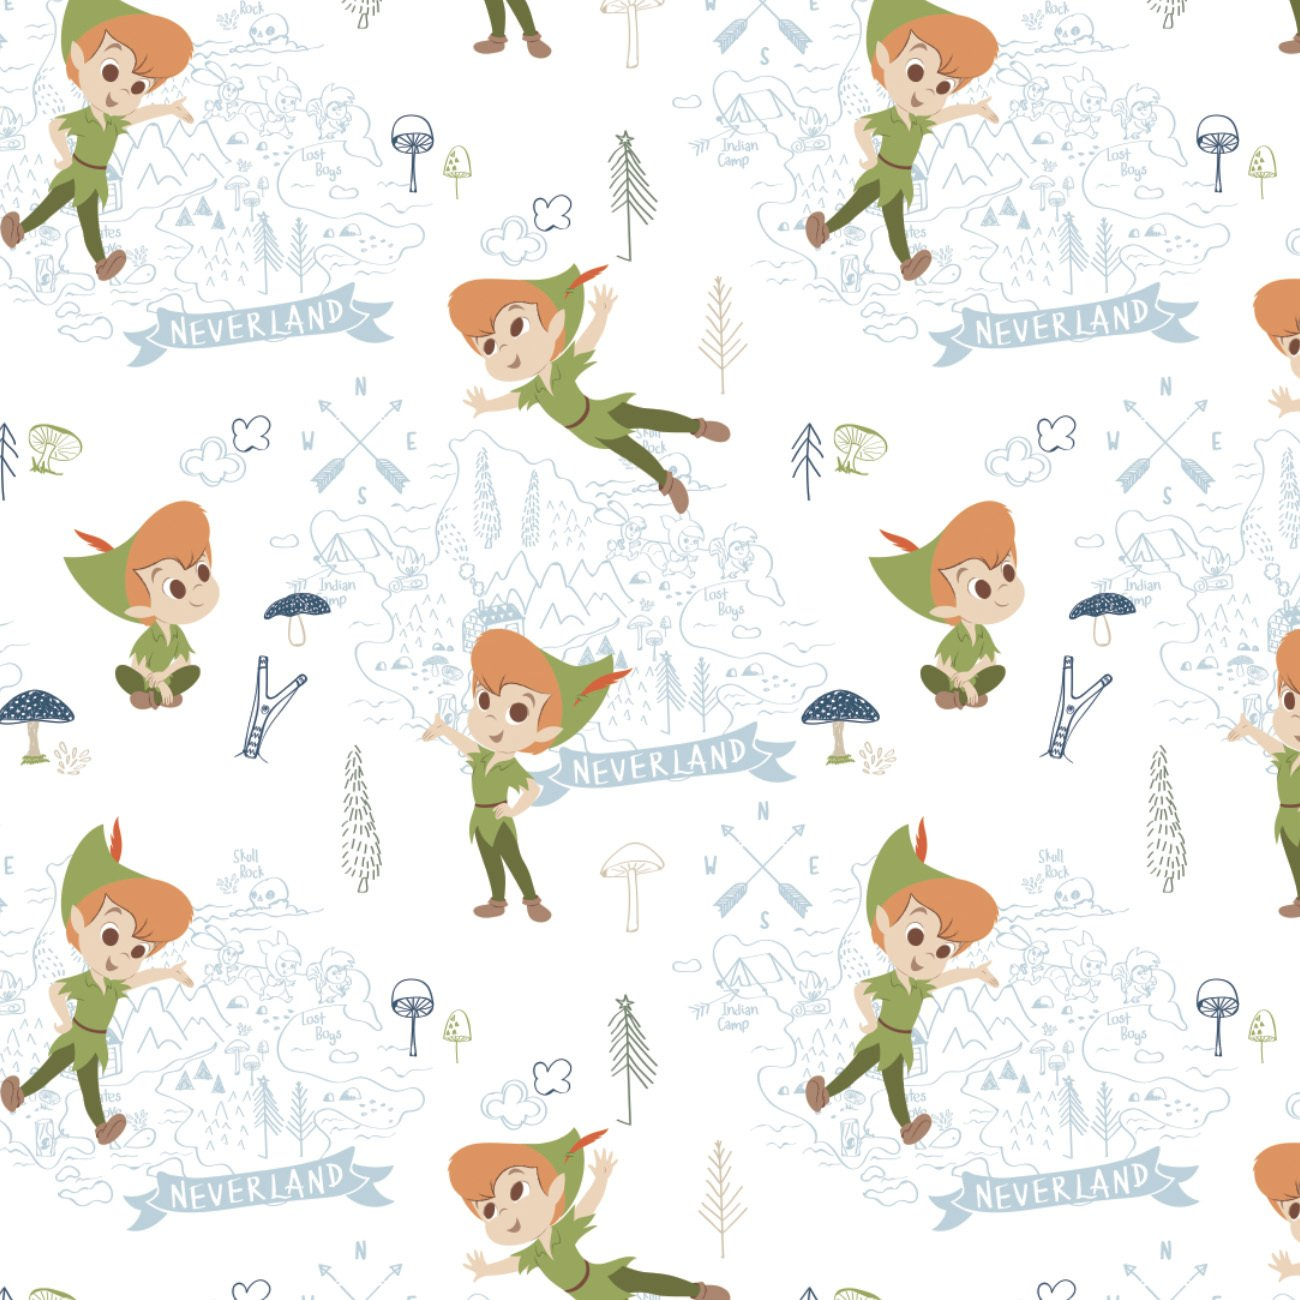 CF-Peter Pan & Tinkerbell 85330201-01 White - Neverland Adventures